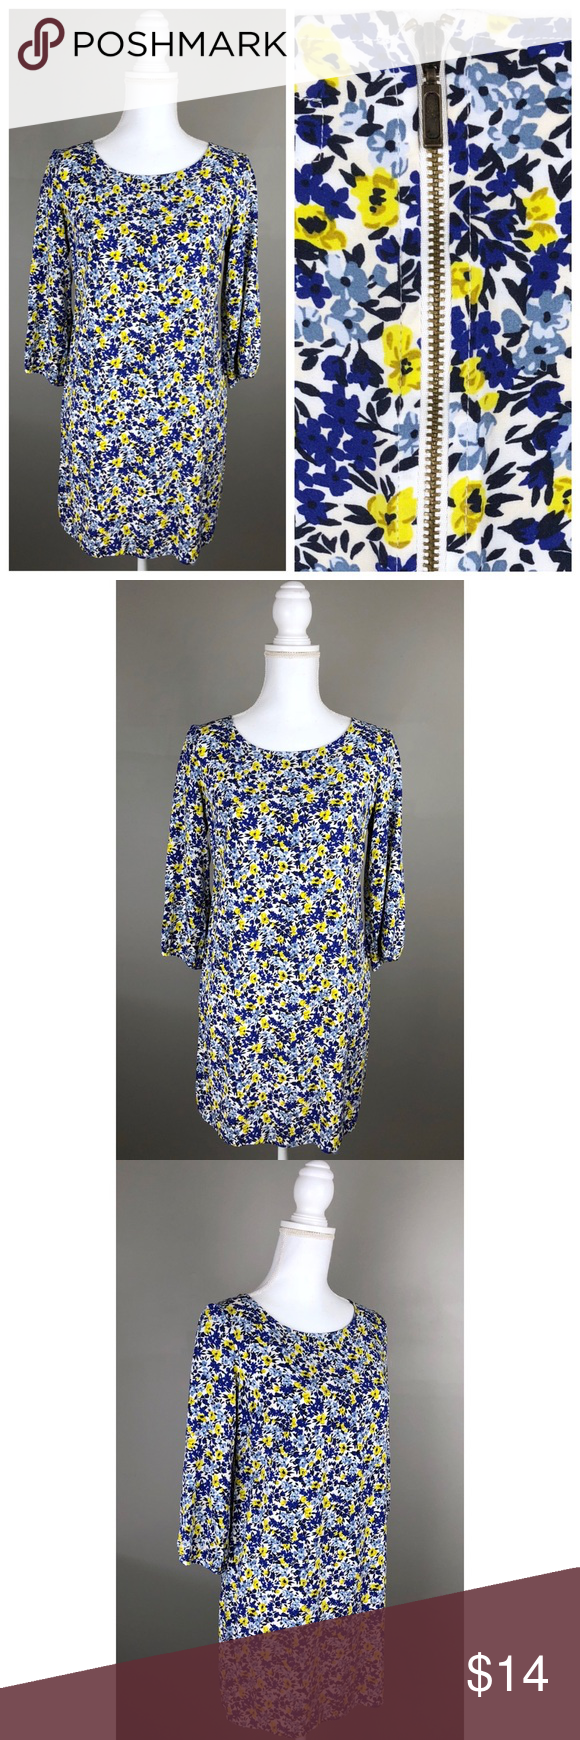 Euc old navy floral spring shift dress yellow blue flaws navy and